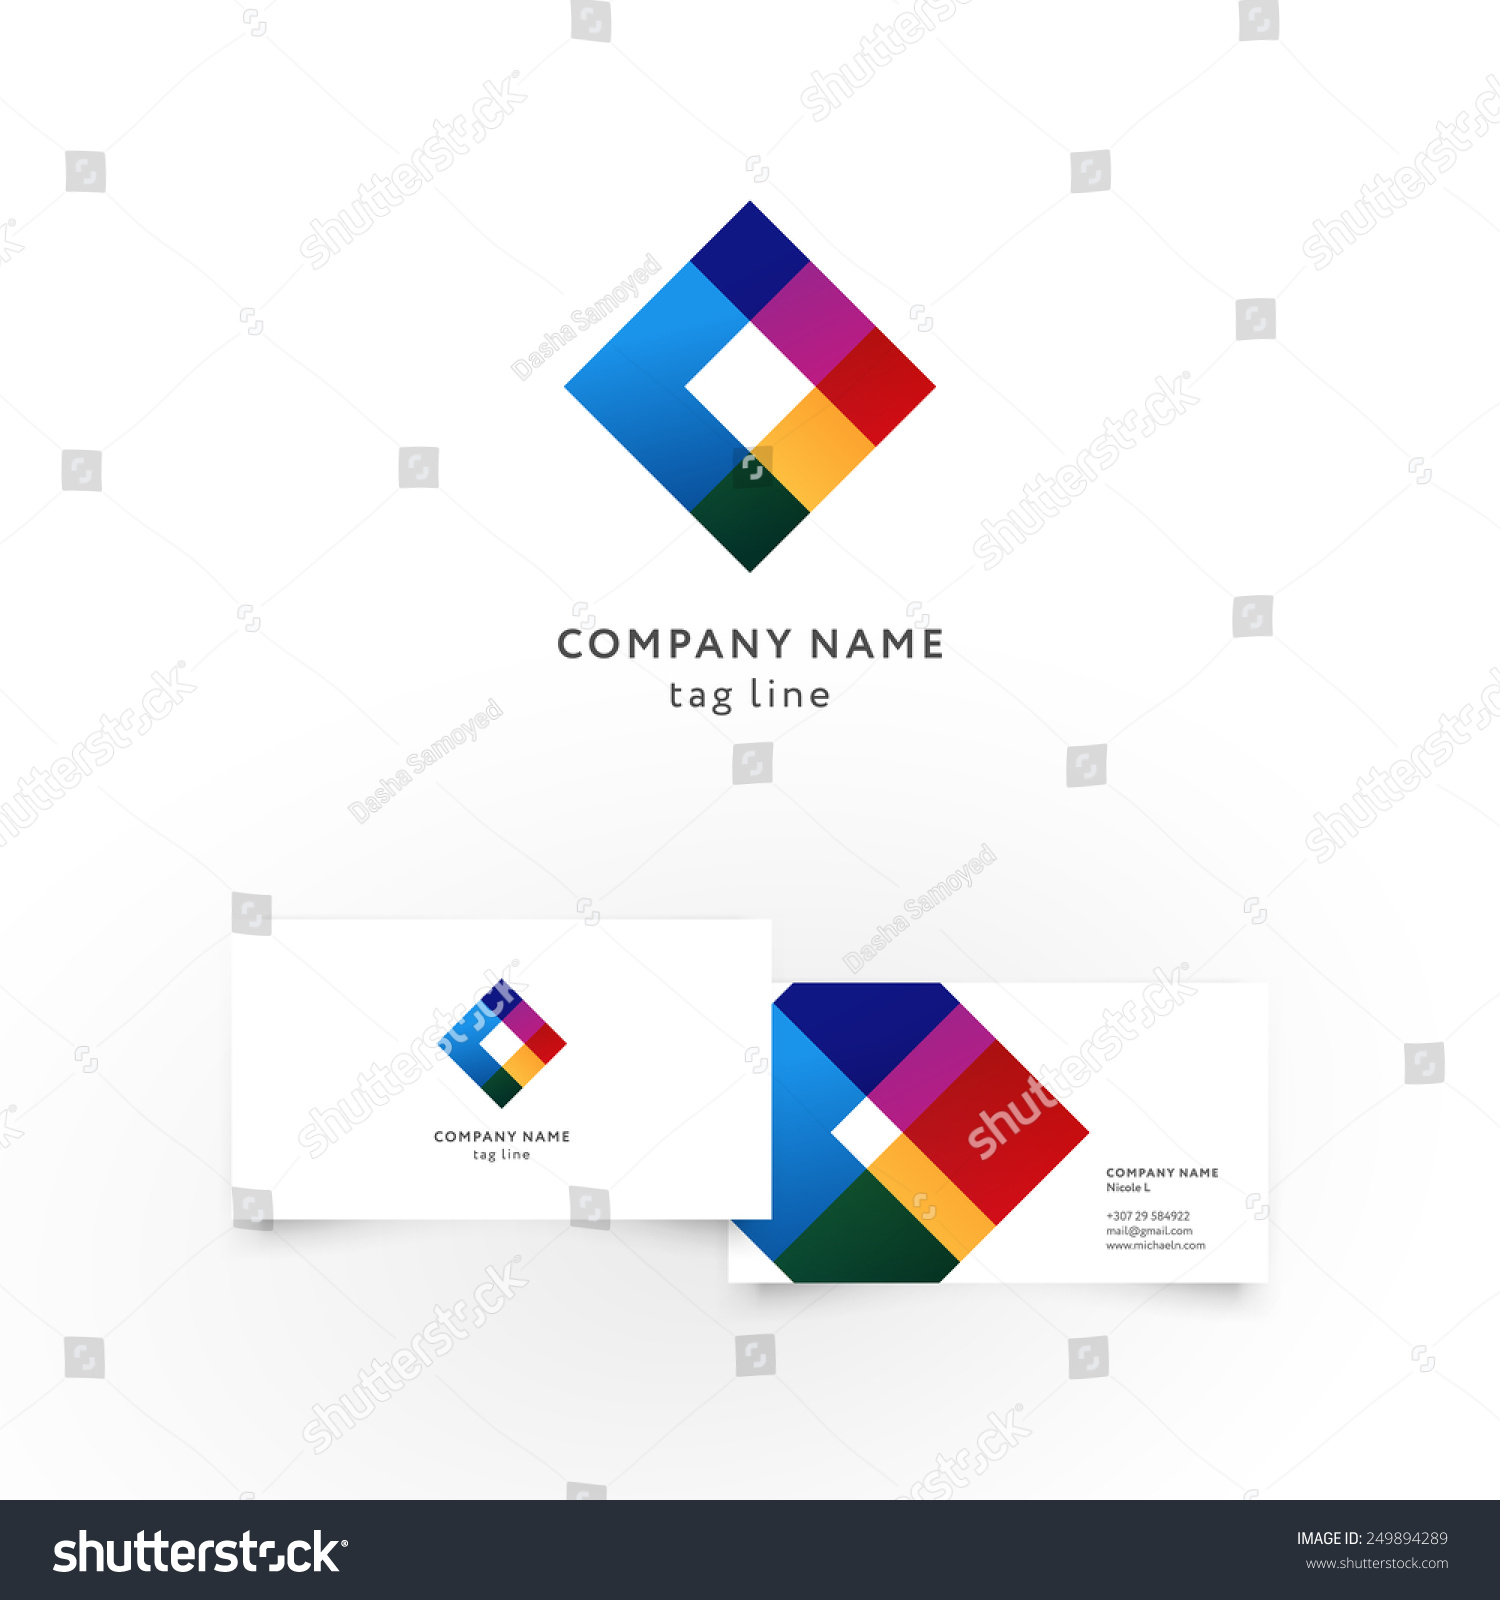 modern icon design element business card stock vector